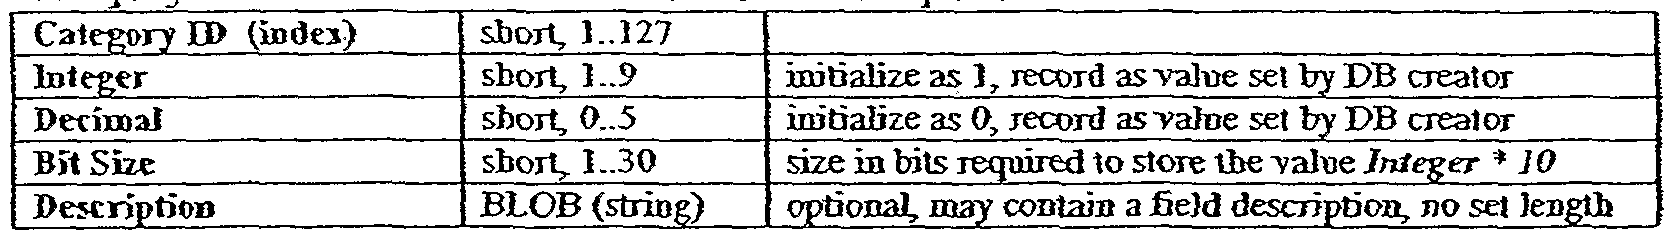 WO2002101593A2 - System and method for managing historical